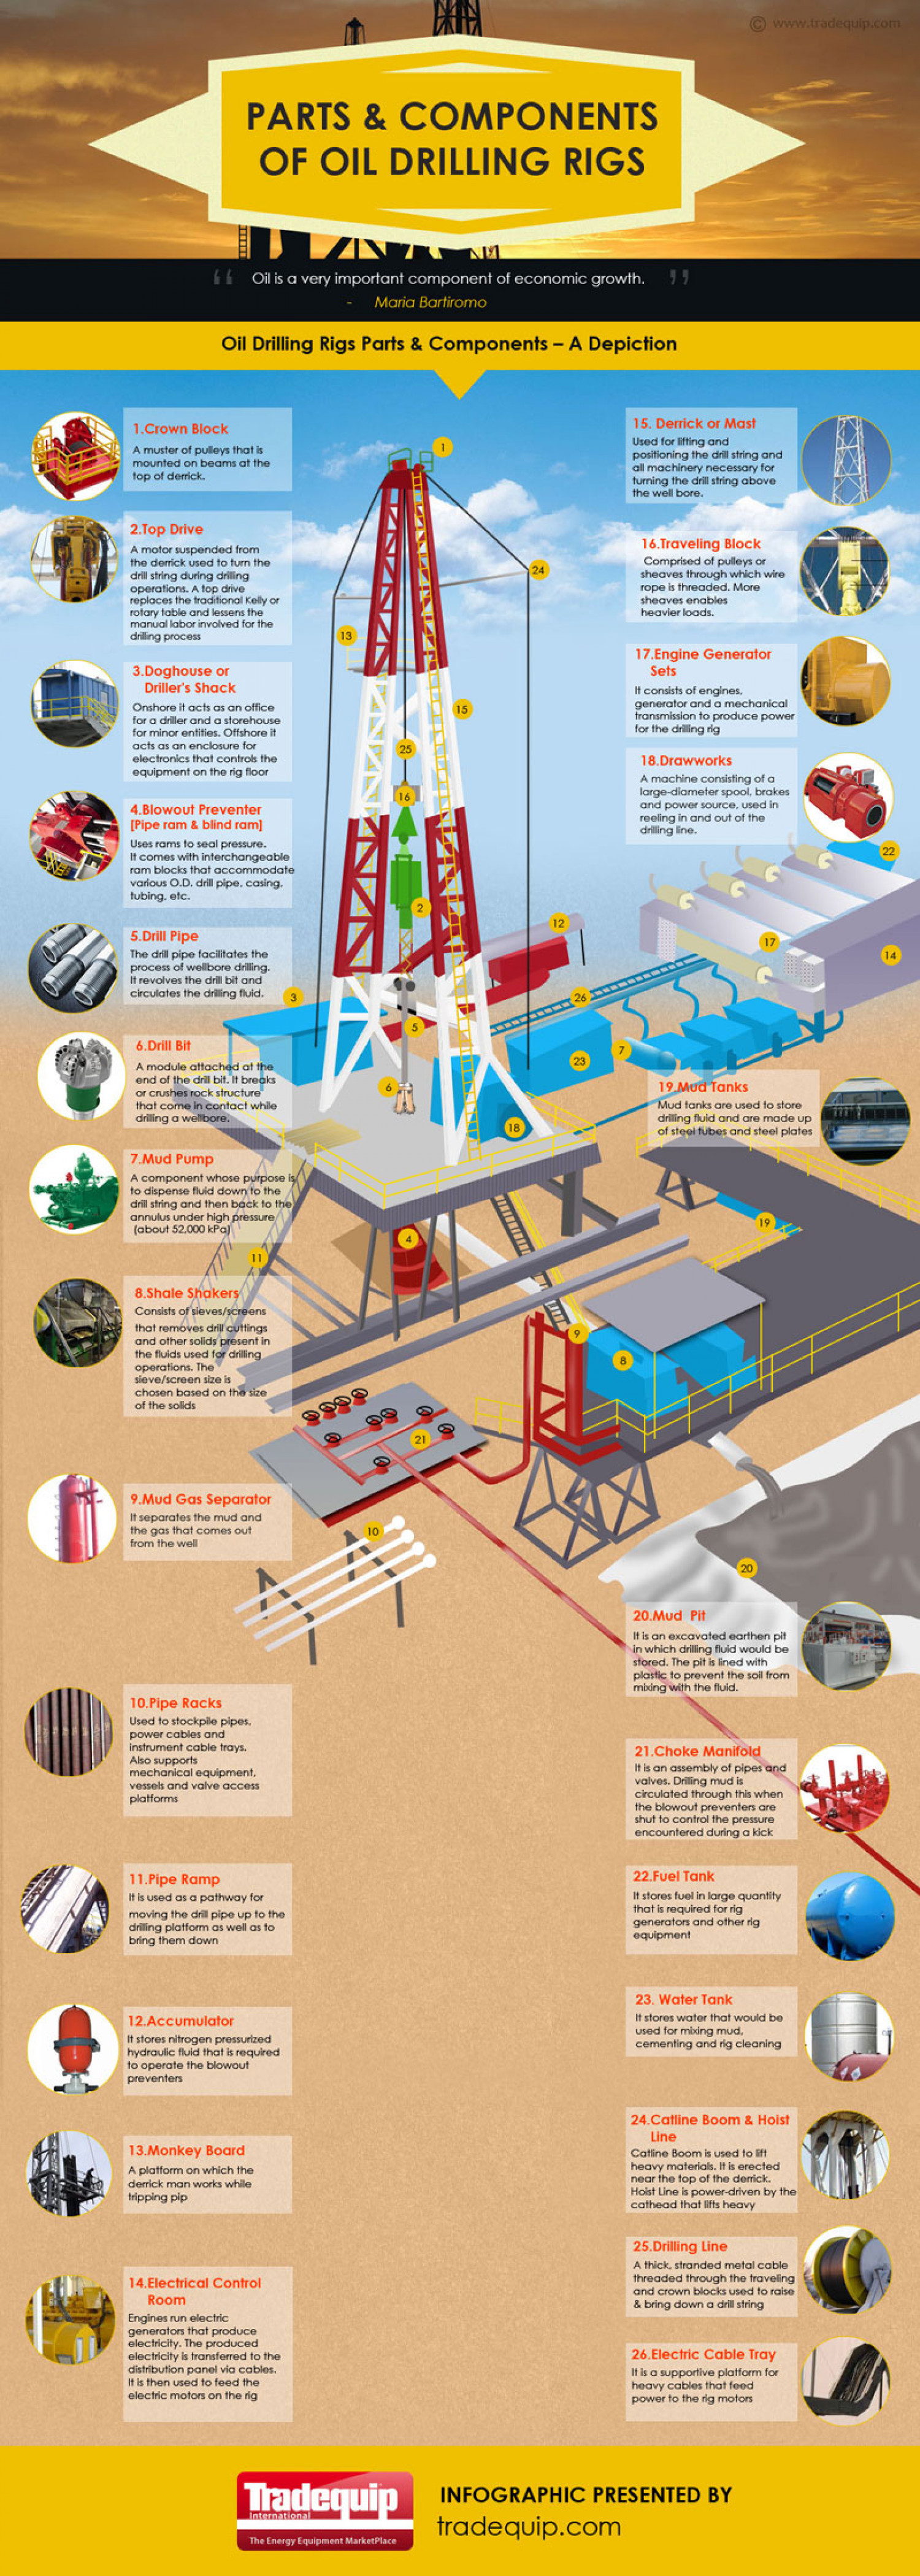 Parts & Components of Oil Drilling Rigs Infographic